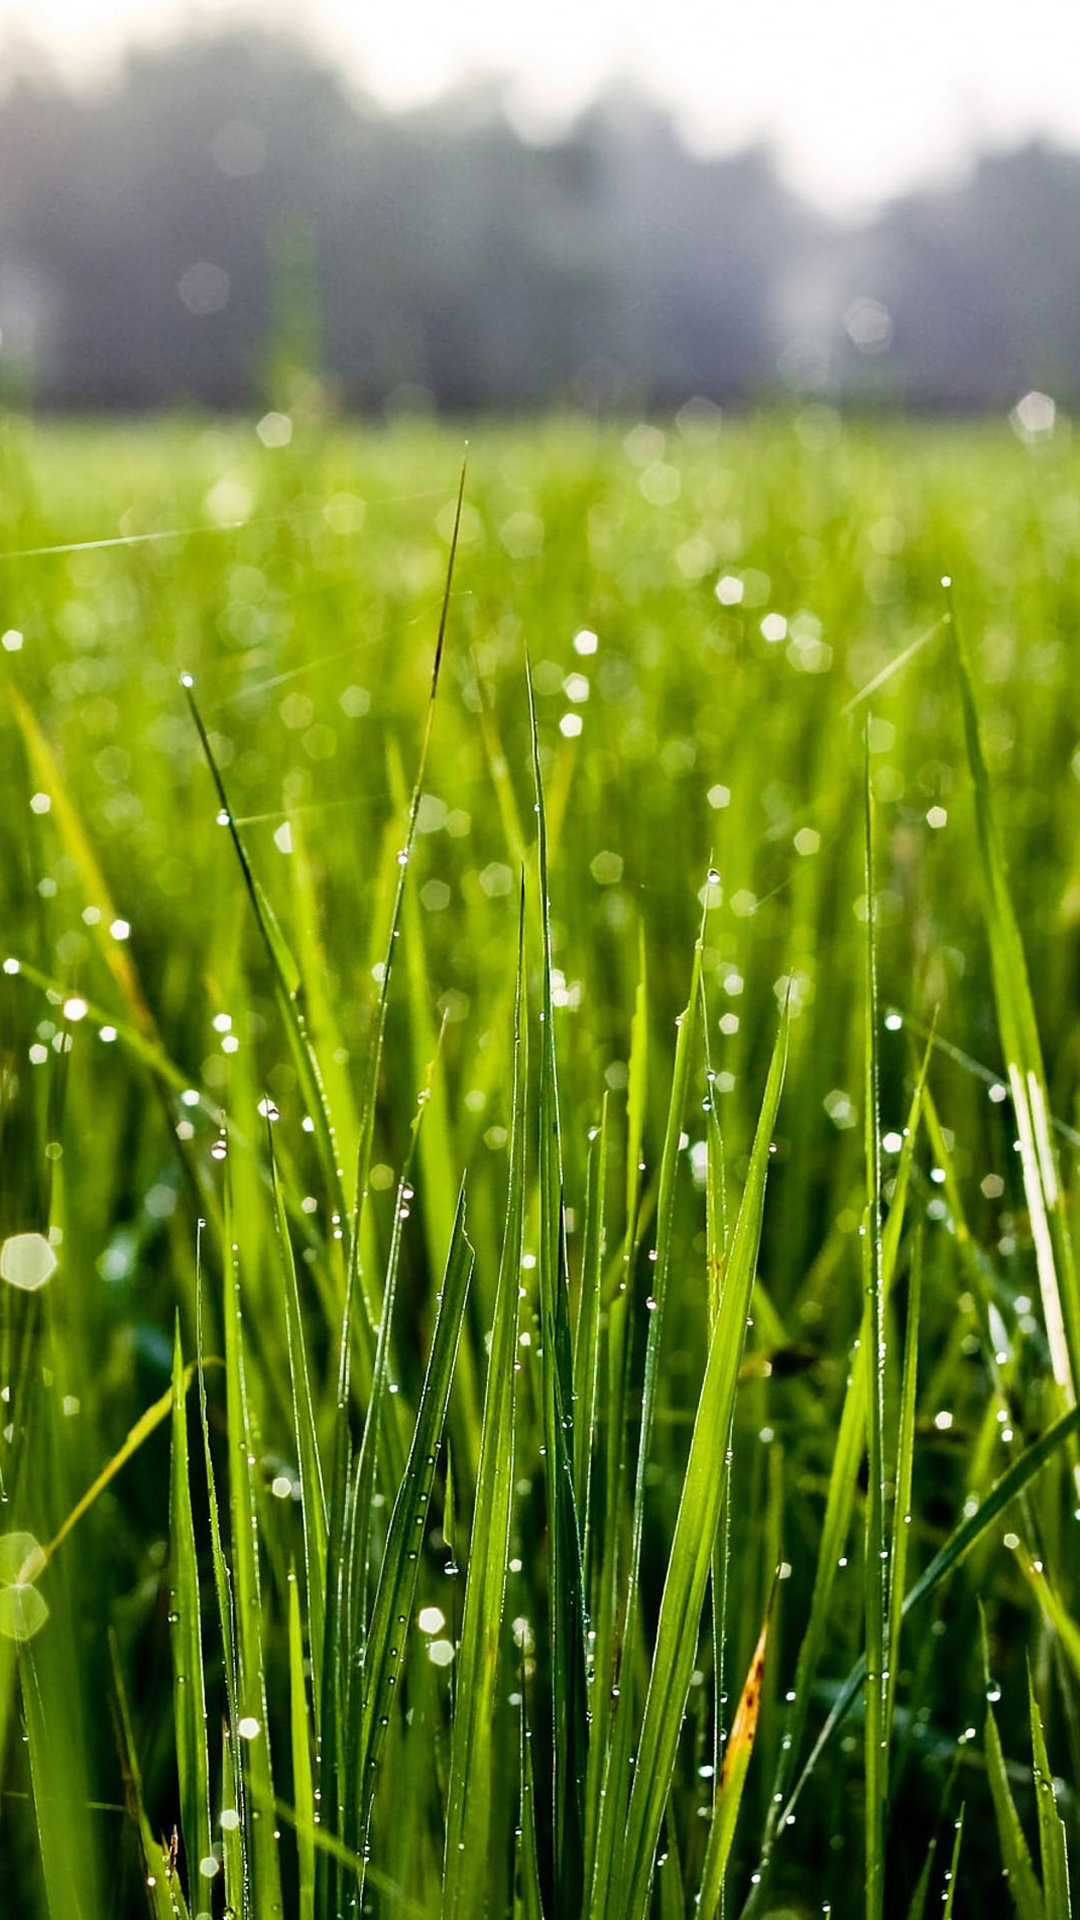 Full Hd Wallpapers 1080p Desktop Free Download 4k Green Grass Wallpapers High Quality Download Free